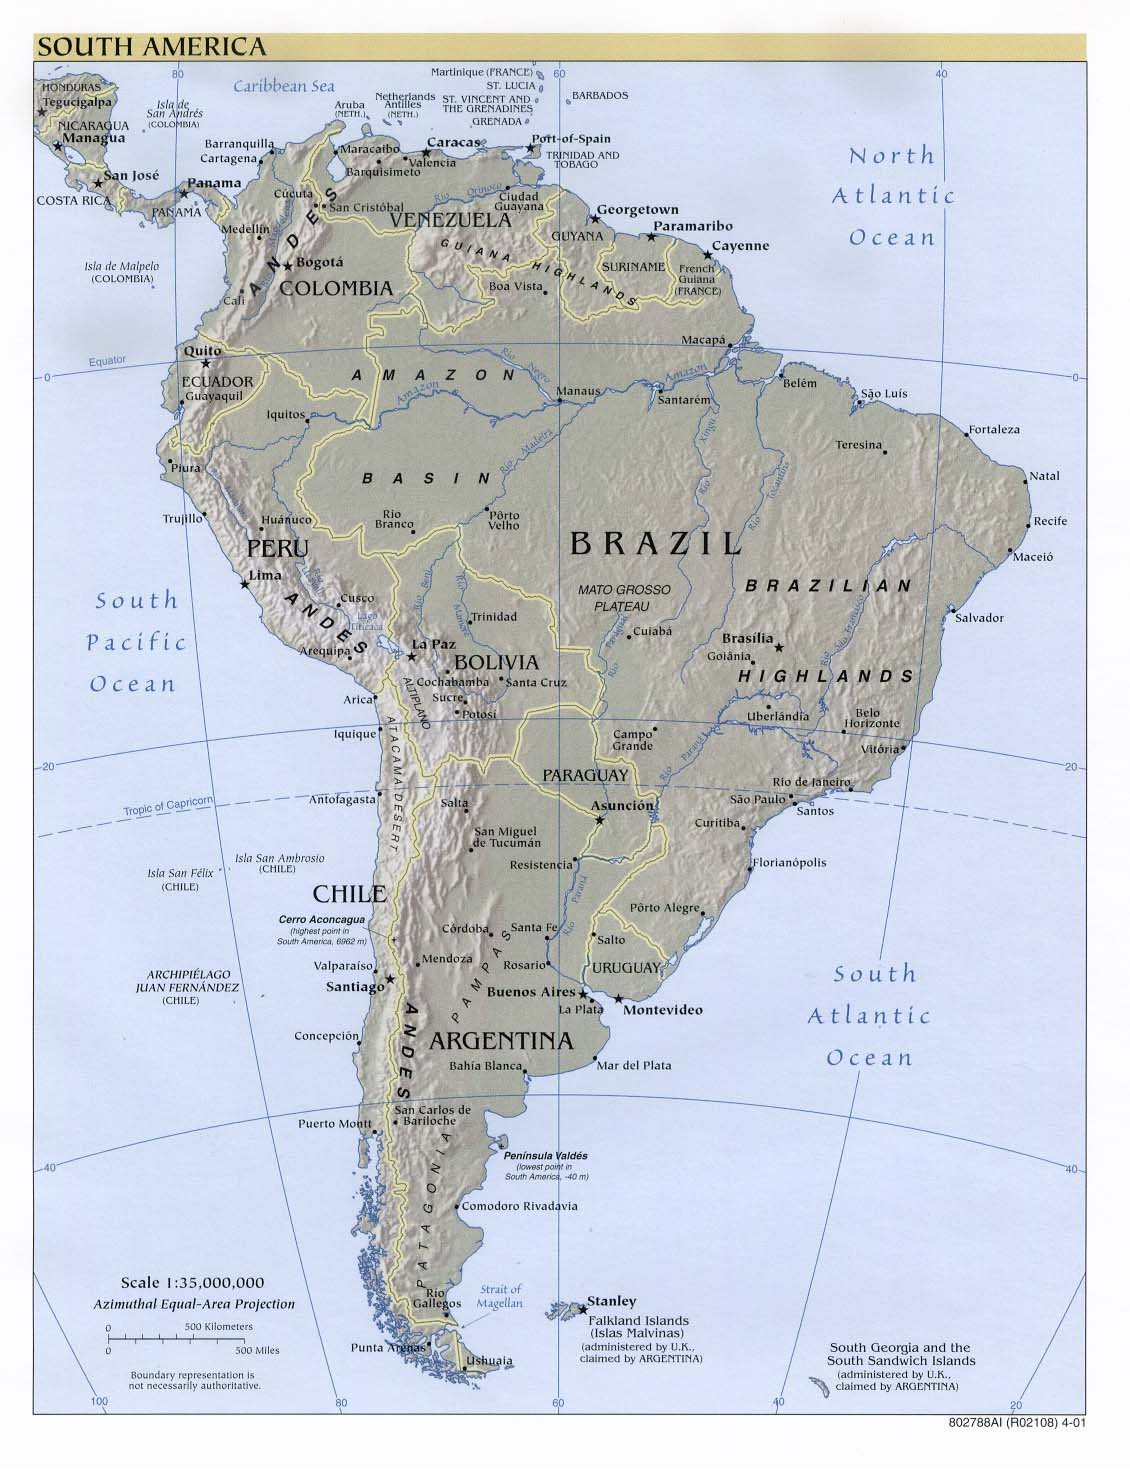 South America Shaded Relief Map 2001